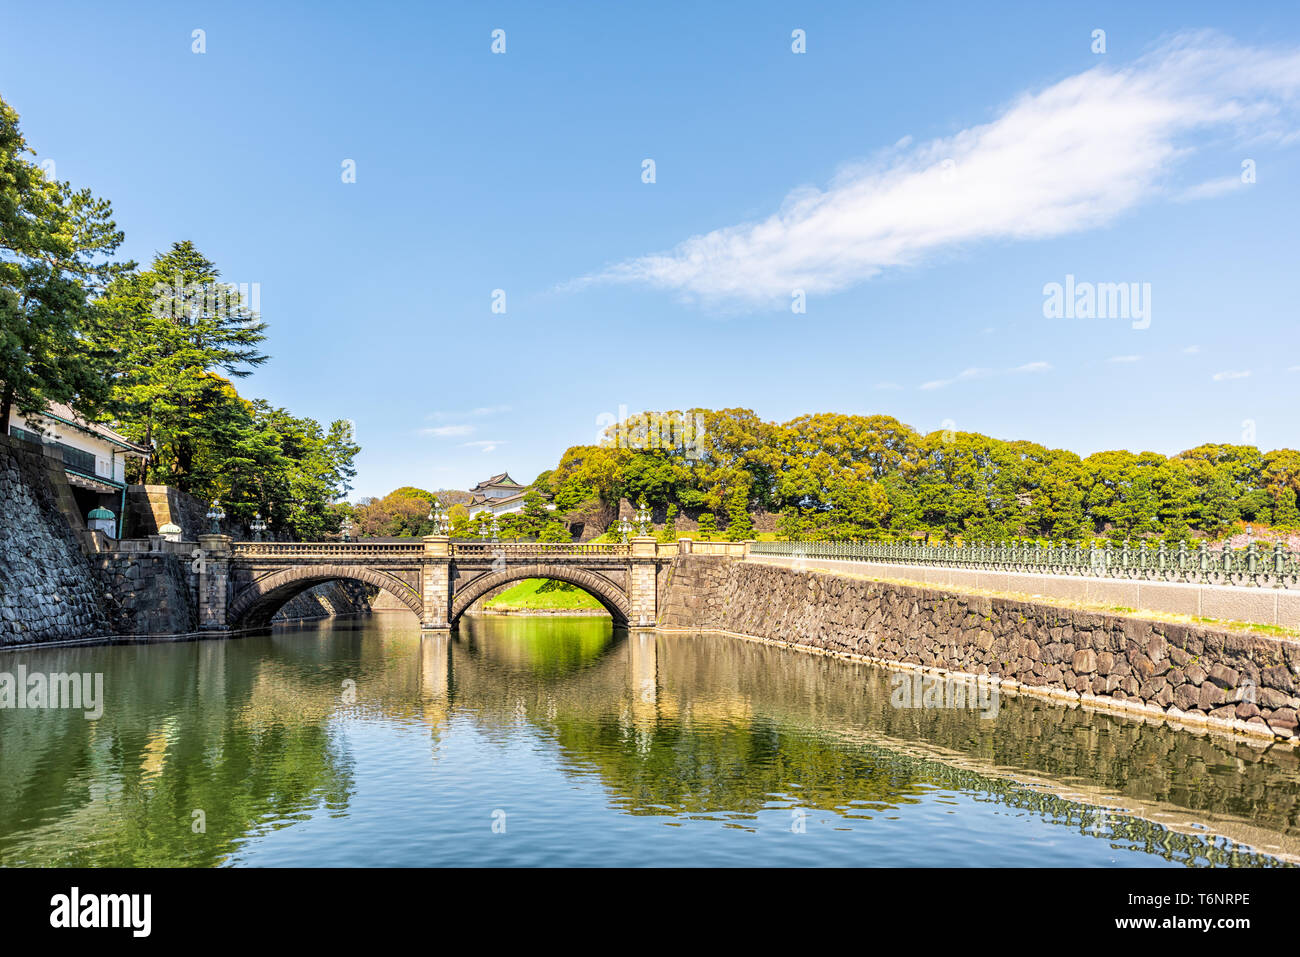 Tokyo, Japan reflection in pool moat by Imperial palace during spring day with royal castle and bridge - Stock Image